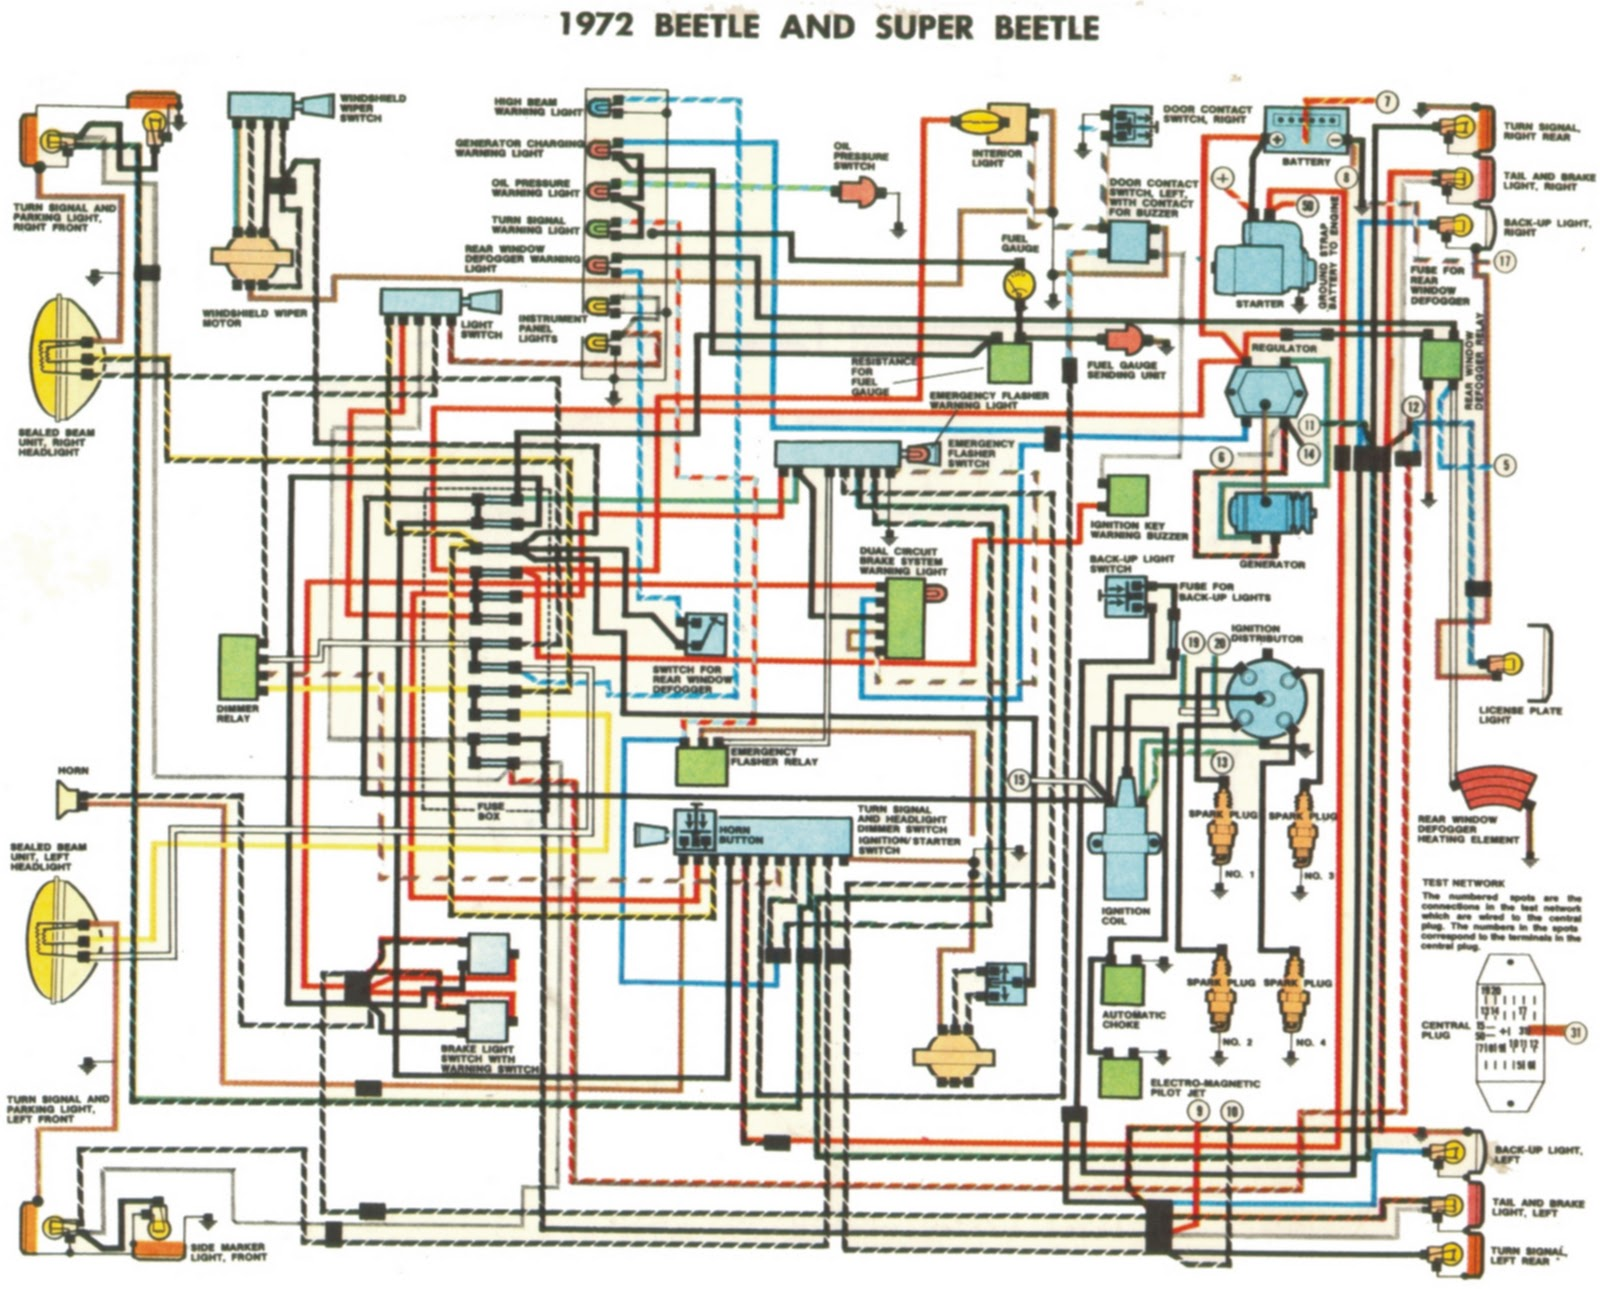 1972 beetle and super beetle wiring diagrams wiring diagram for 1971 vw beetle readingrat net 1971 vw beetle wiring diagram at aneh.co